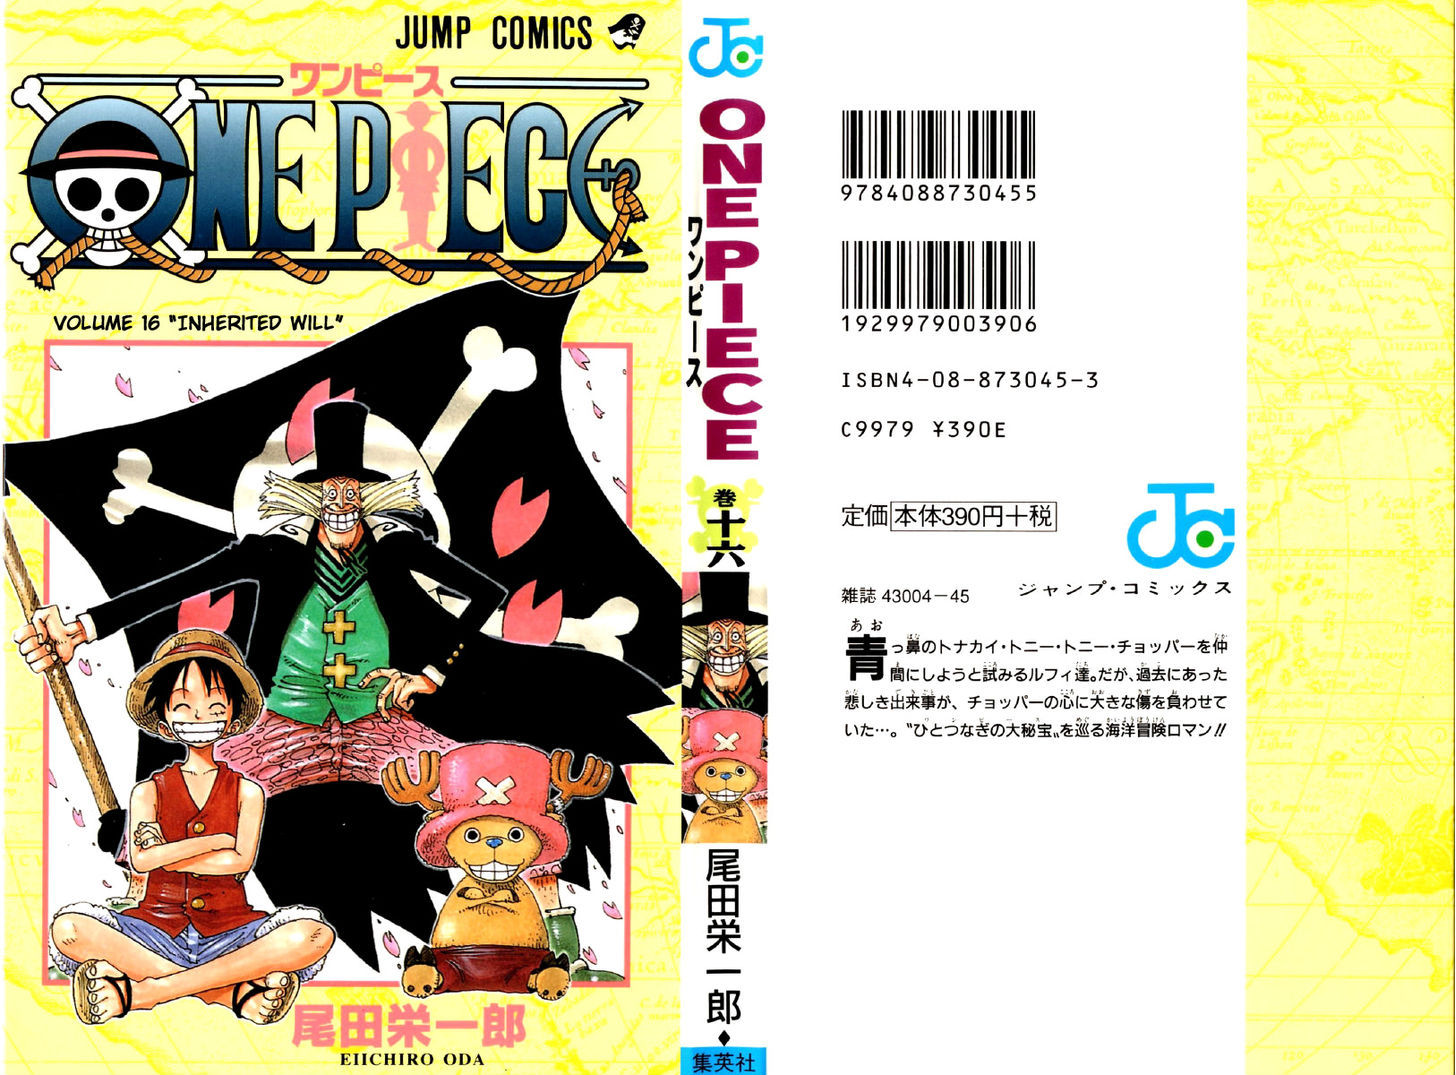 https://im.nineanime.com/comics/pic9/32/96/2485/OnePiece1370893.jpg Page 1